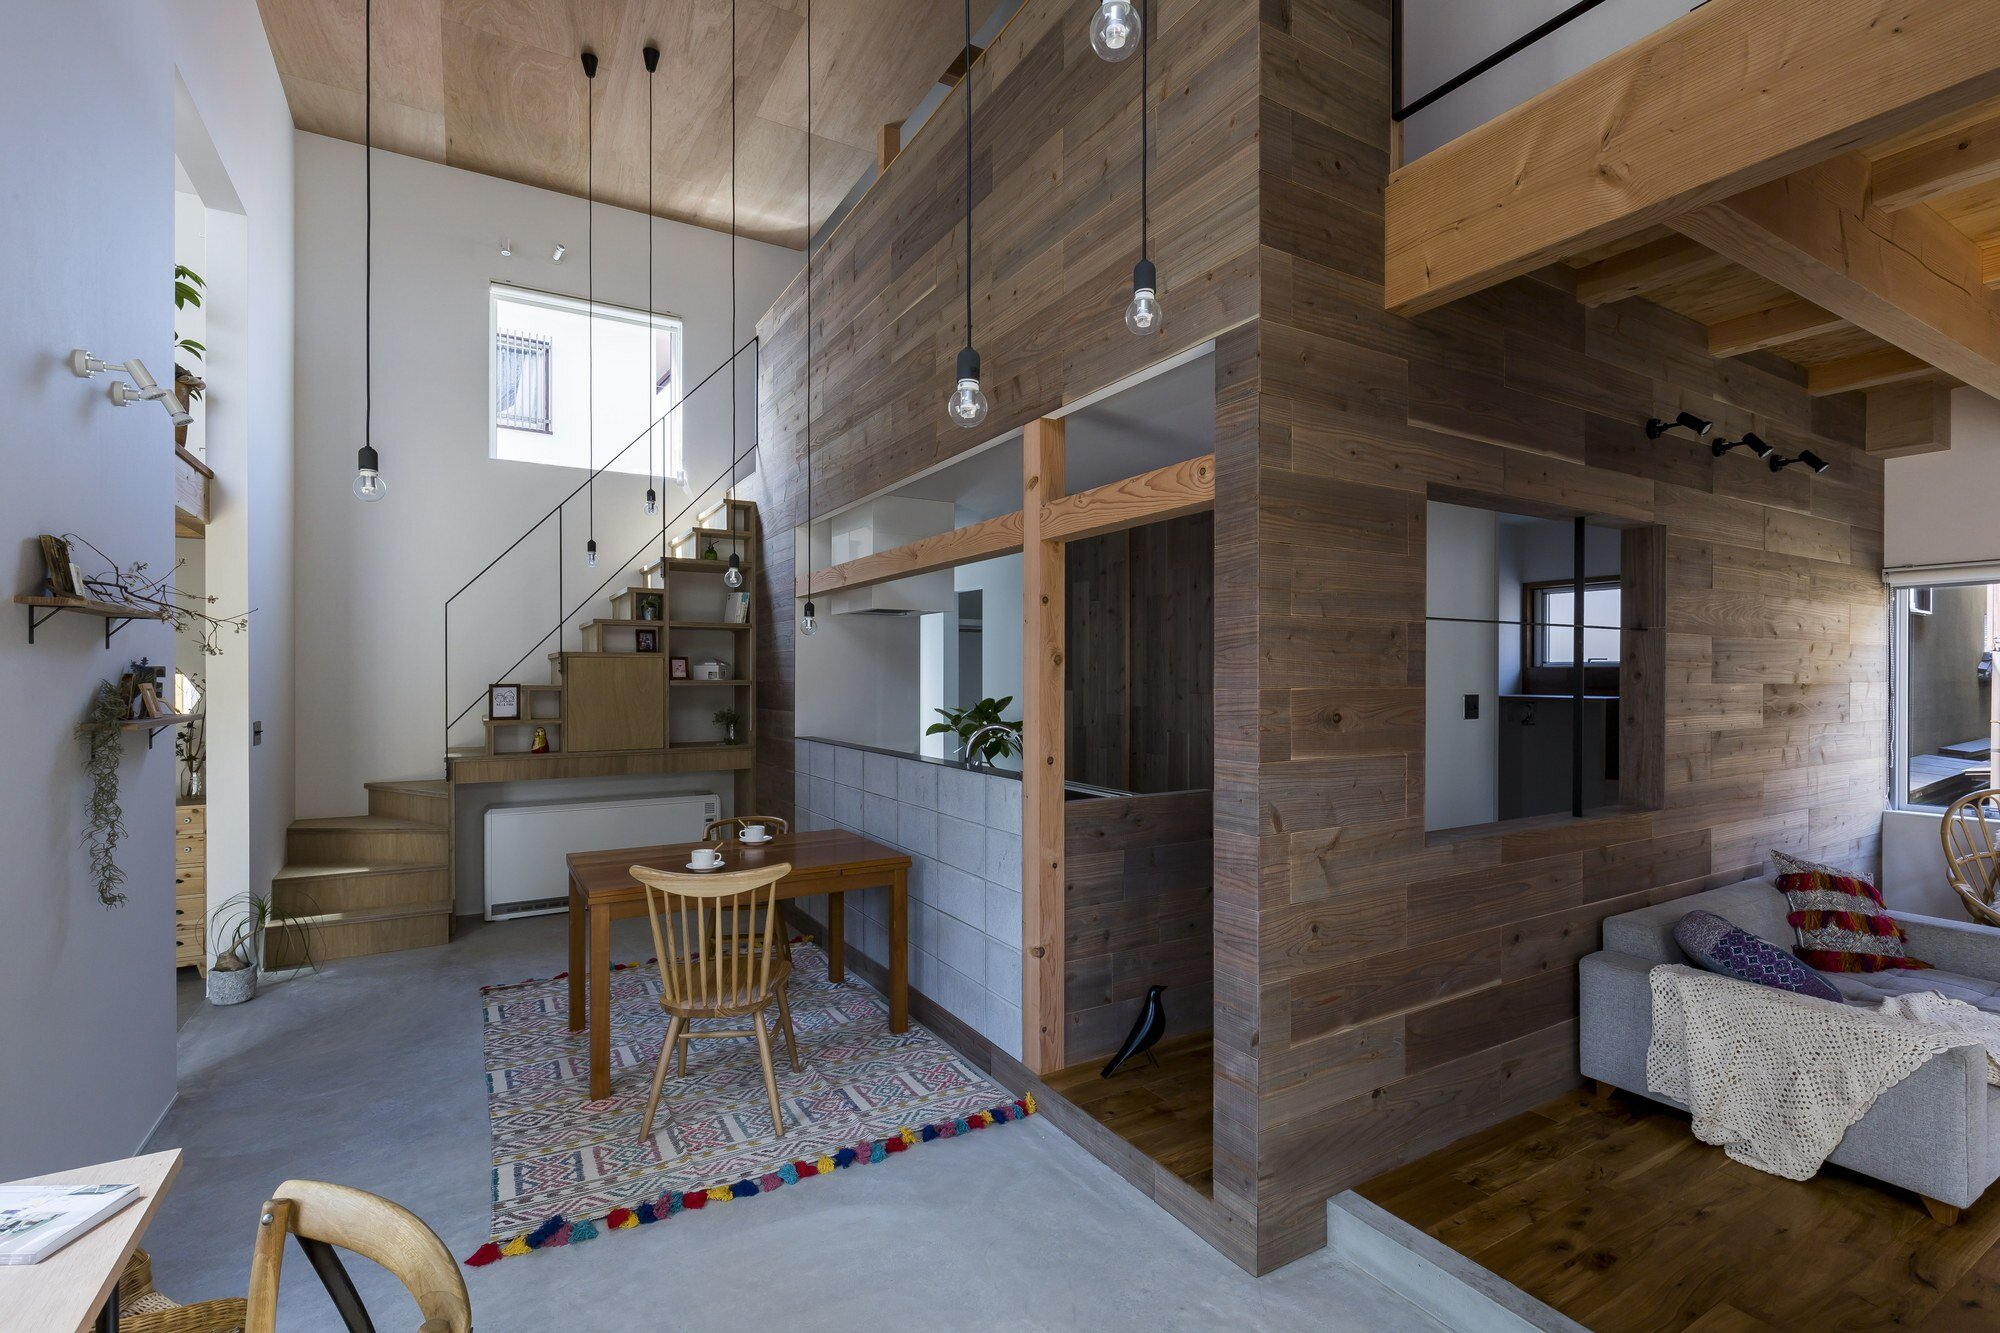 Uzi House - ALTS Design Office - Hironocho Kyoto - Dining and Living Room - Humble Homes